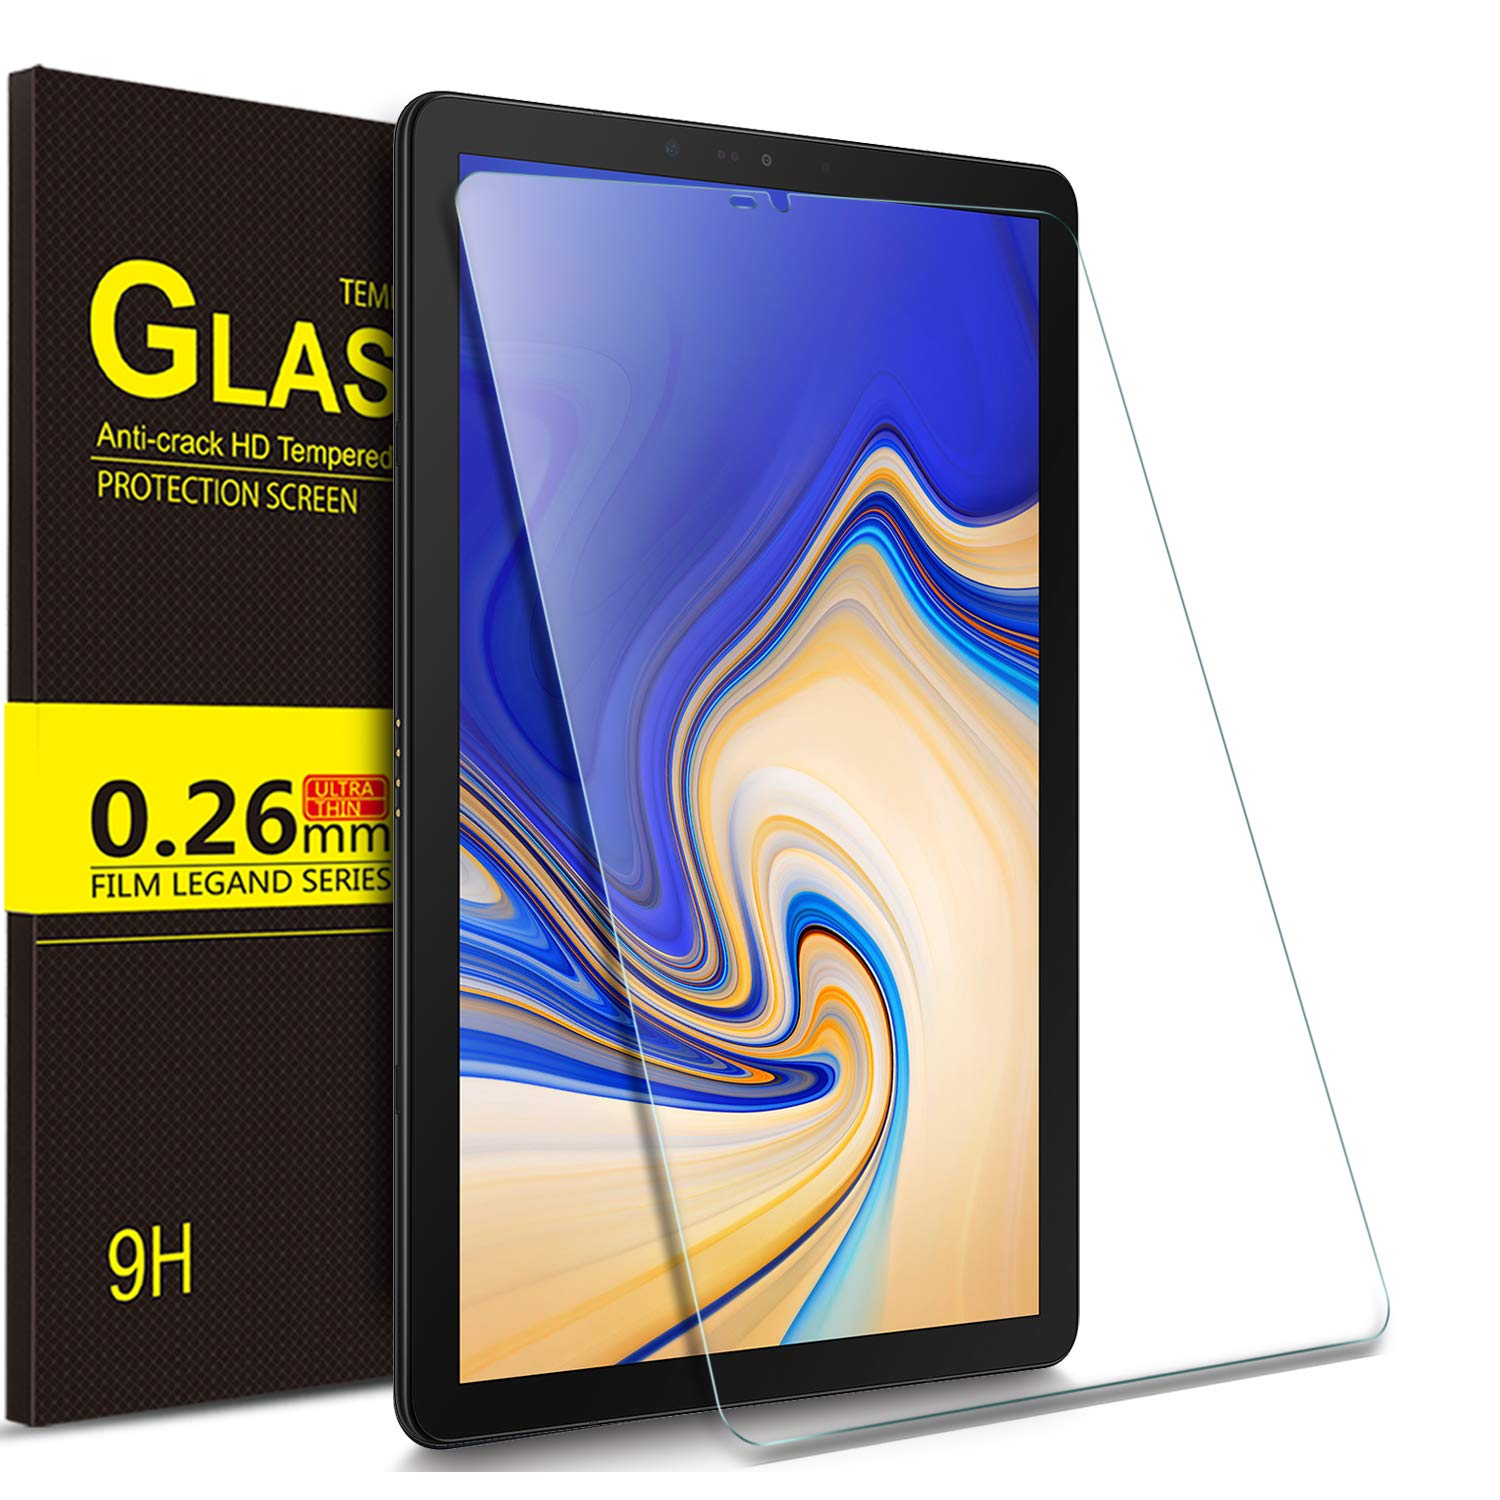 IVSO Samsung Galaxy Tab S4 10.5 Tablet Screen Protector Tempered-Glass HD Clear Scratch Resistant for Samsung Galaxy Tab S4 SM-T830 Wi-Fi & SM-T835 4G LTE 10.5-inch 2018 Release Tablet